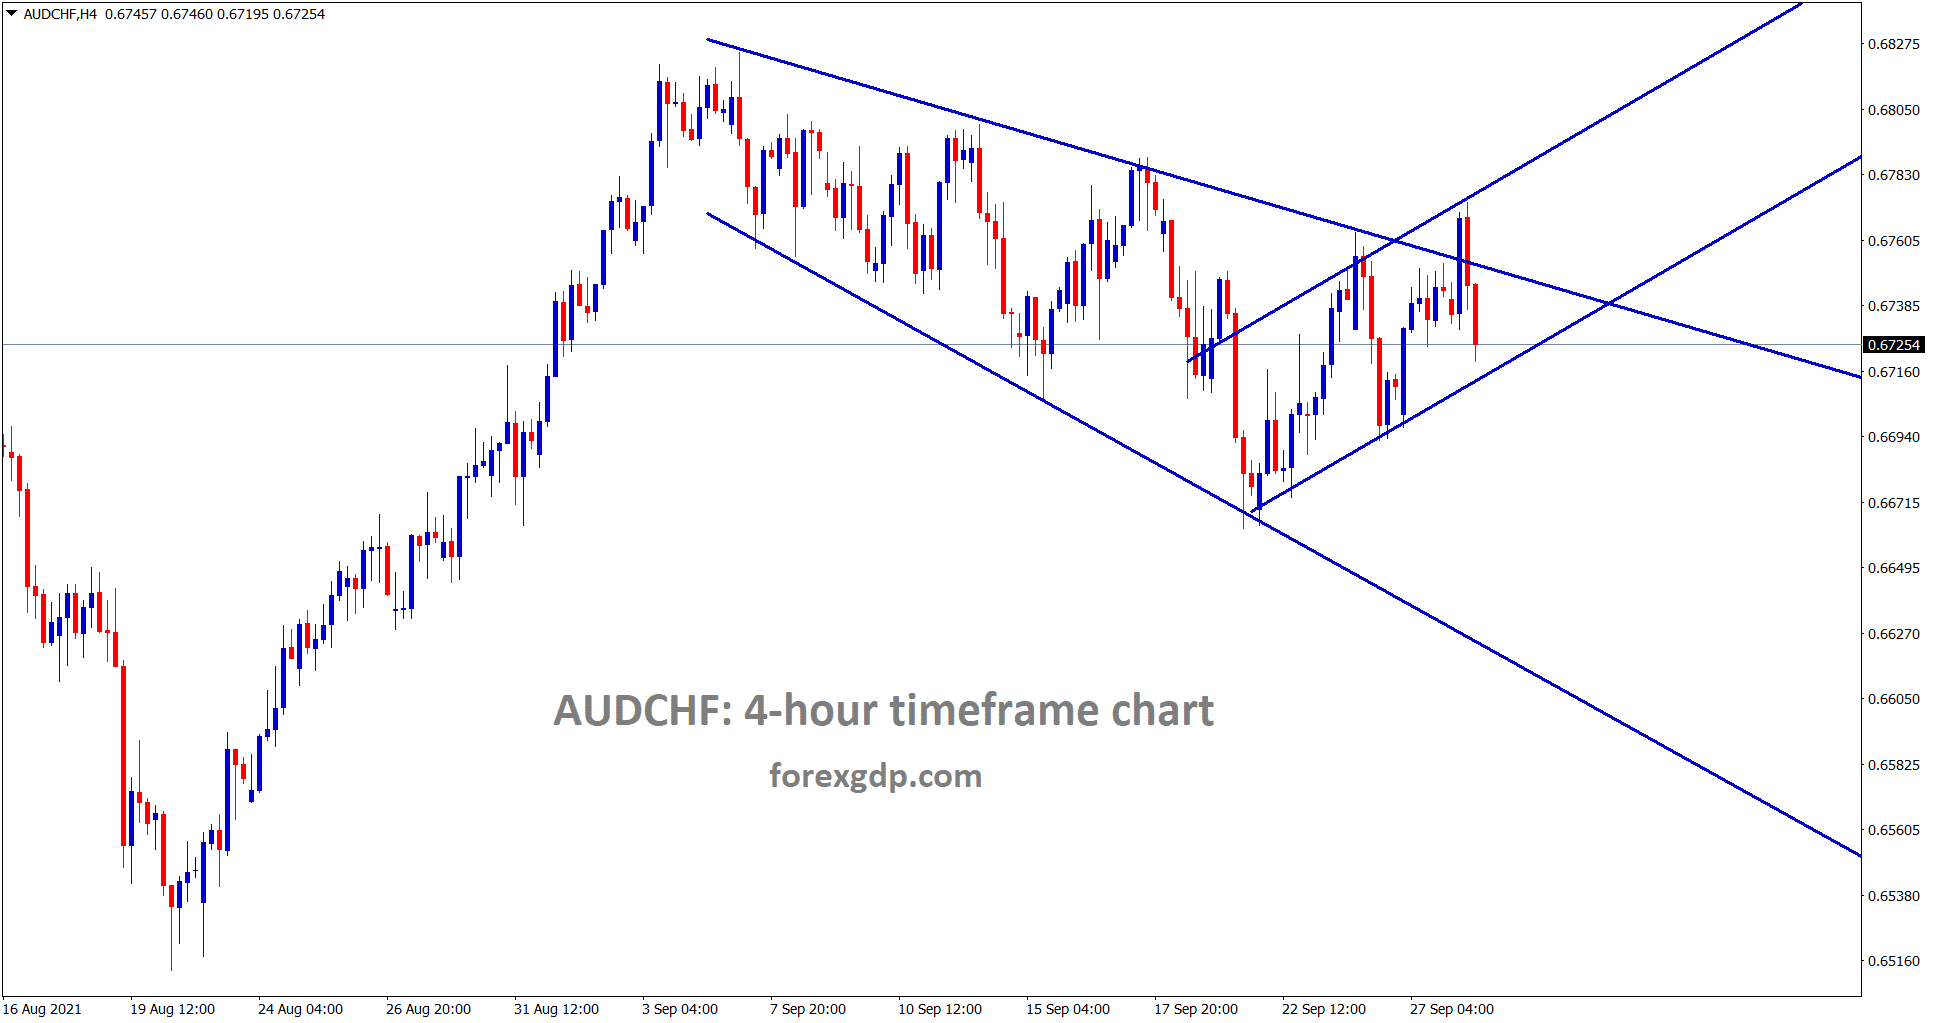 AUDCHF is moving in an Expanding channel pattern and also moving in a minor ascending channel